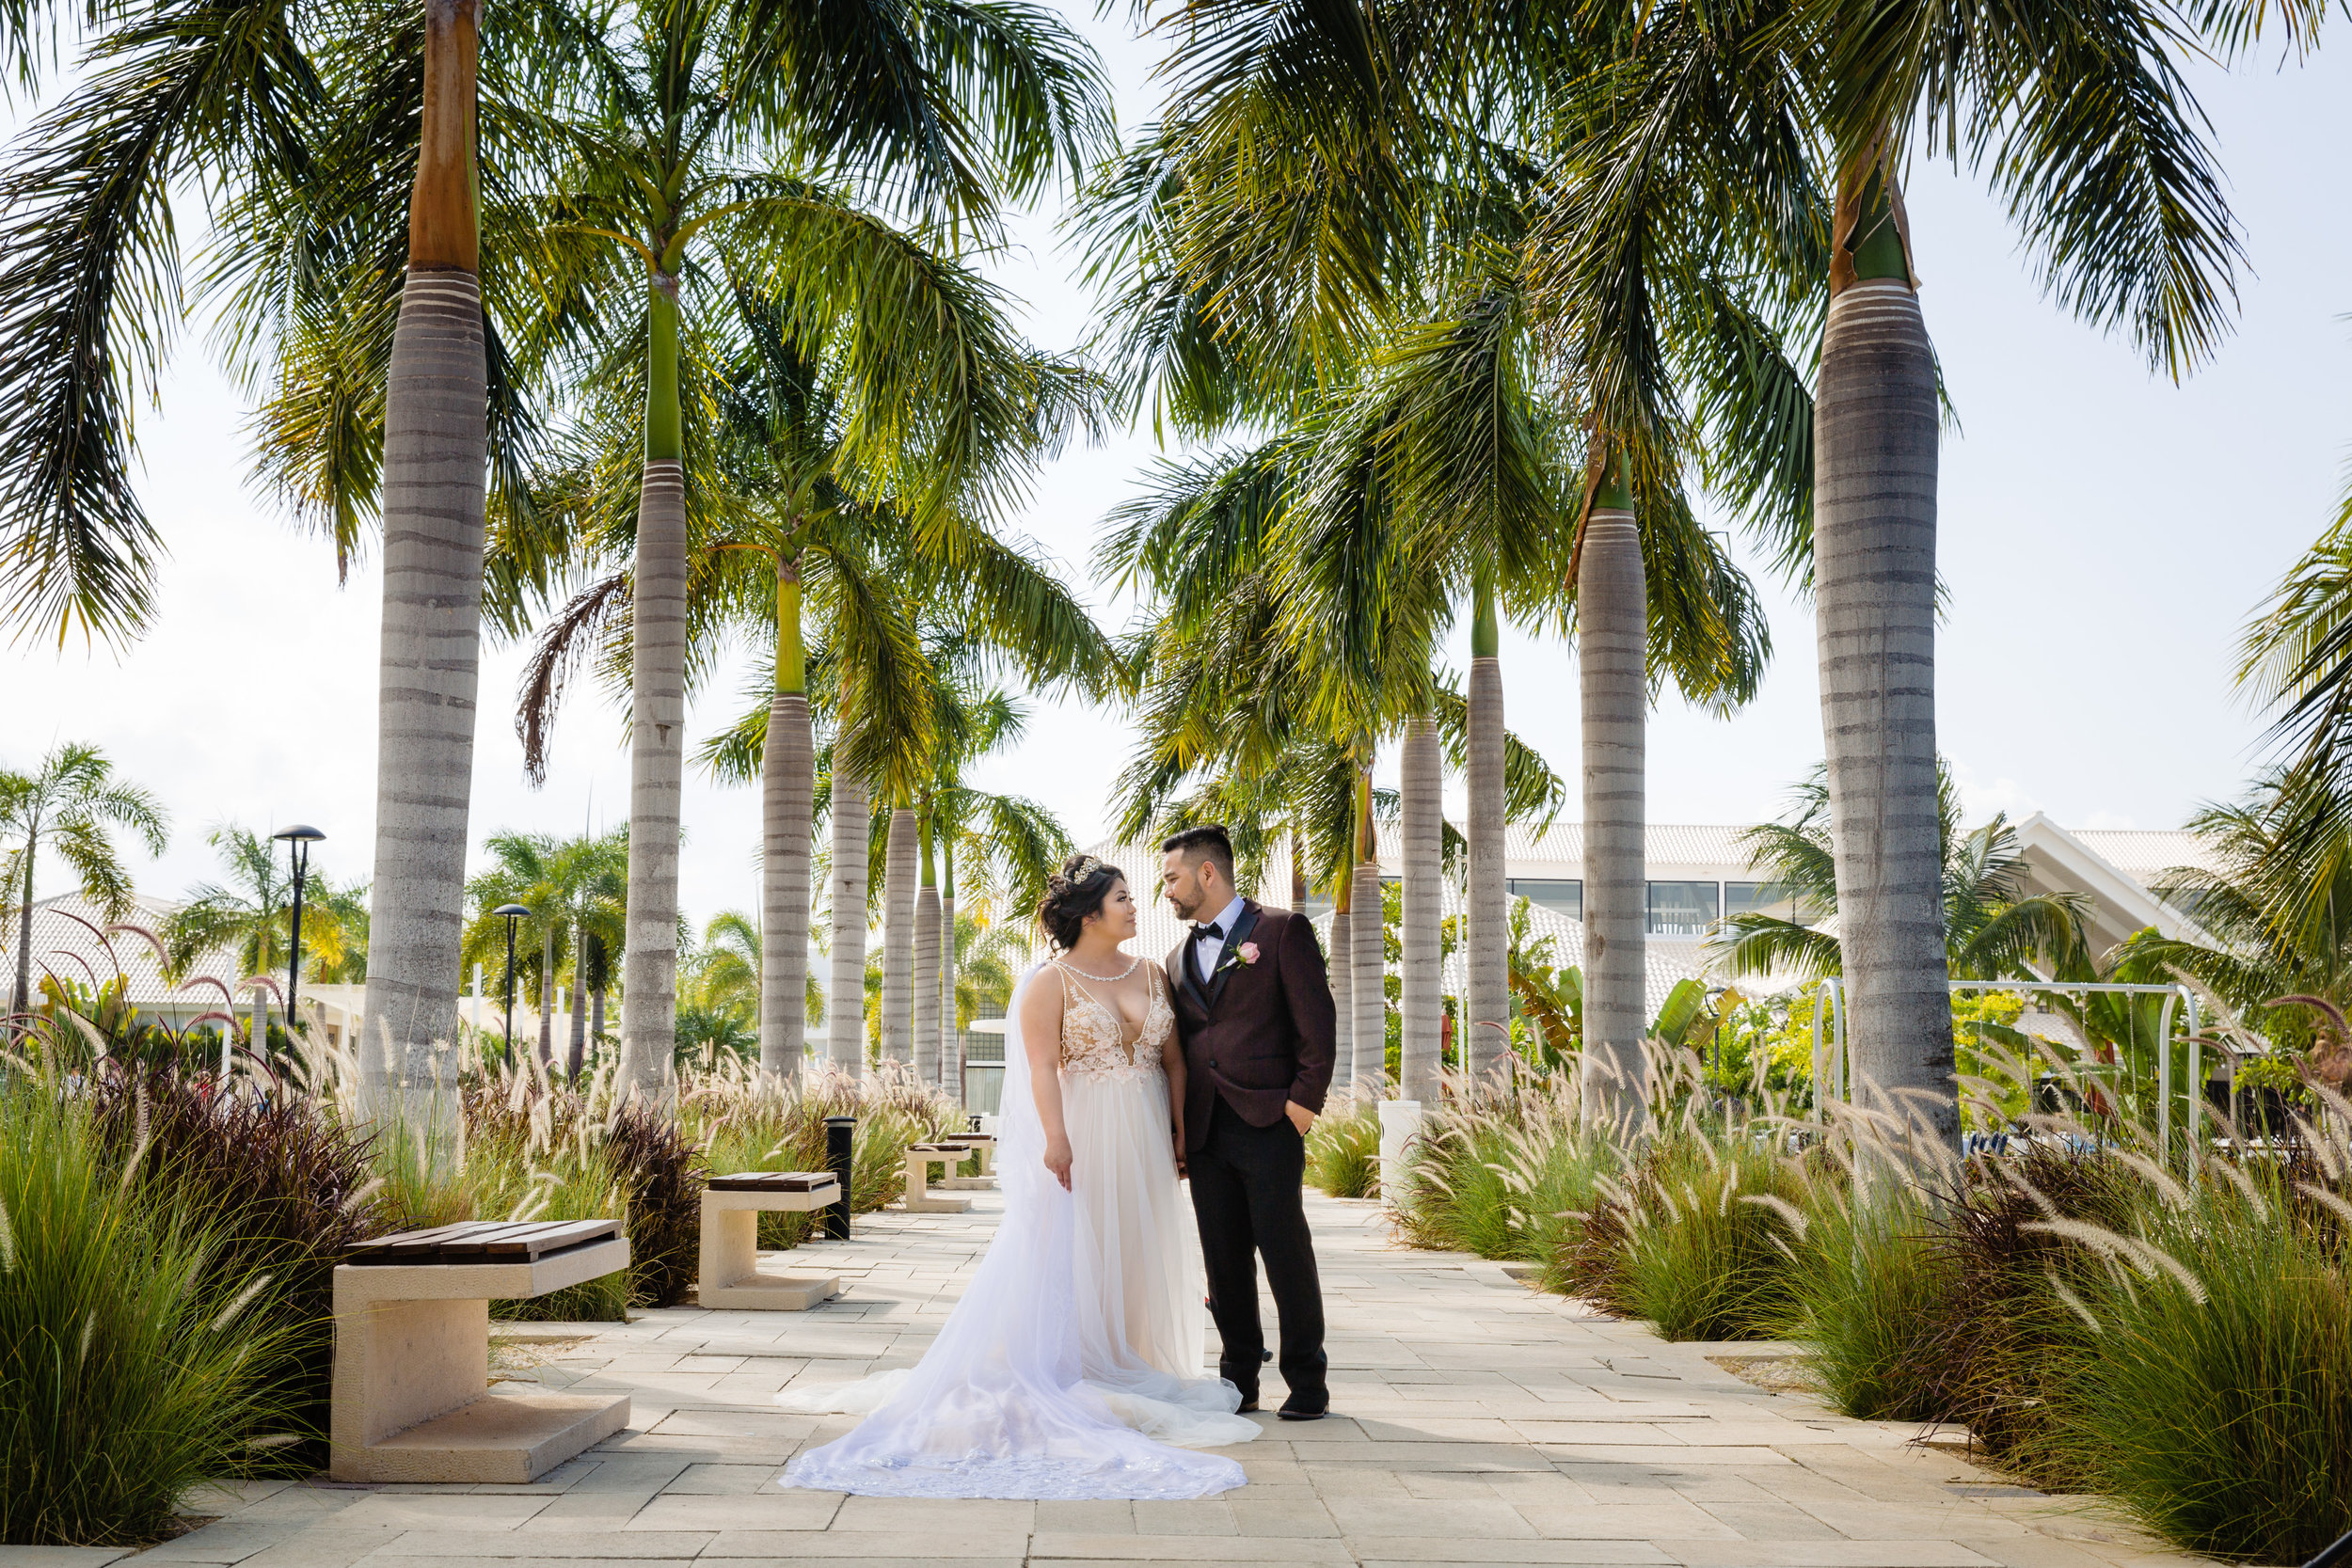 Destination Weddings - Getting married somewhere cool? Bring me with you!! My travels have included Jamaica, Riviera Maya, Riviera Nayarit, Dominican Republic, Hong Kong, and my couch. ;)Packages including travel & accommodations start at $3600+tax